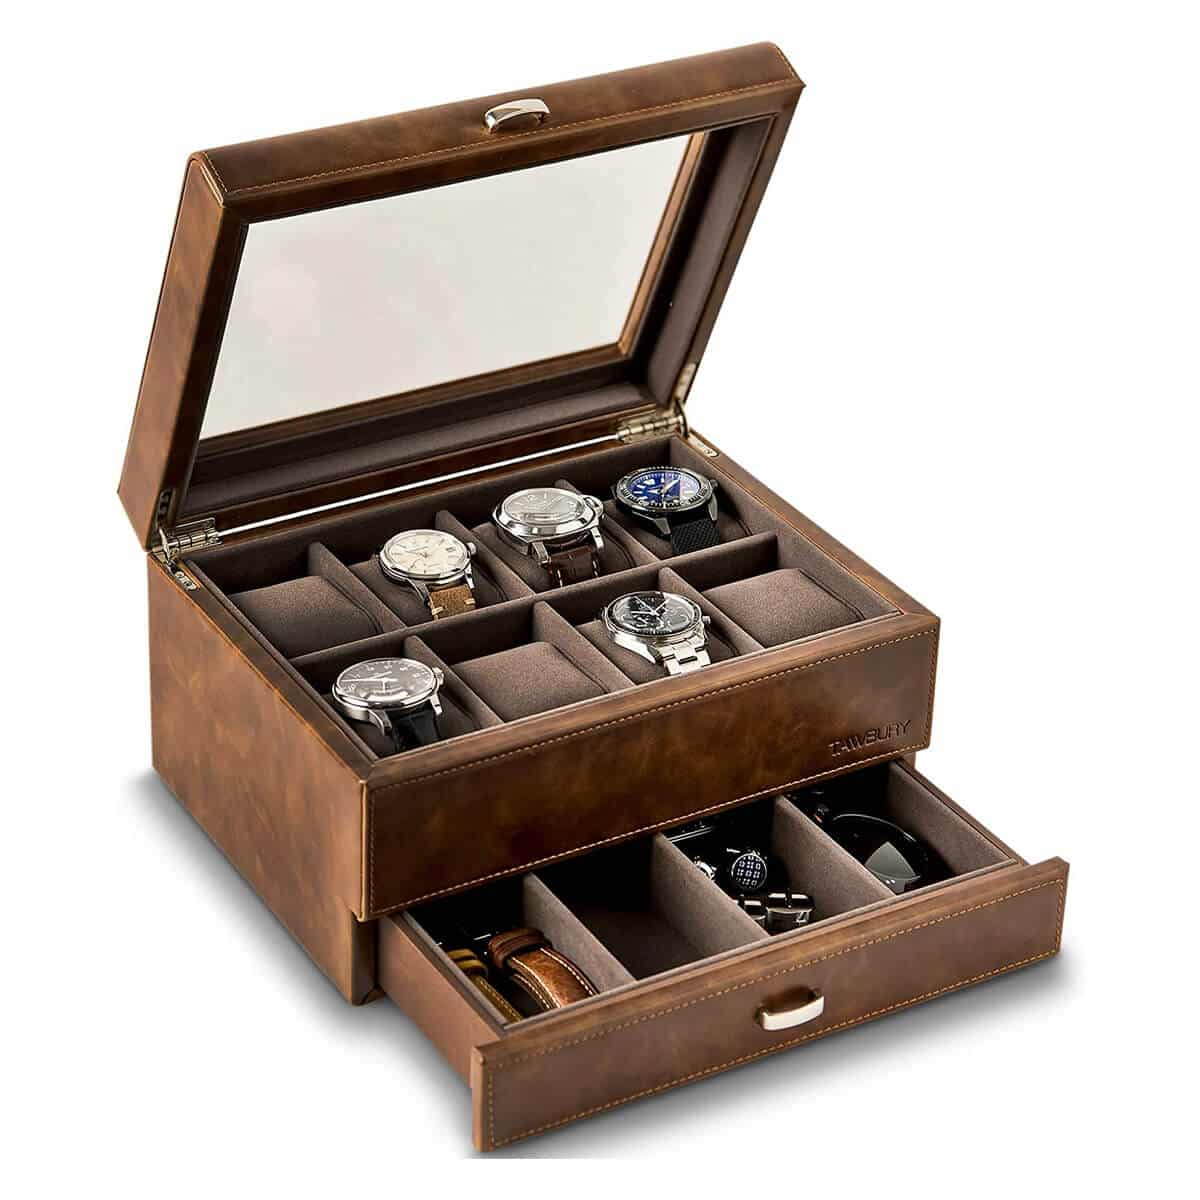 TAWBURY 8 Watch Case with Drawer